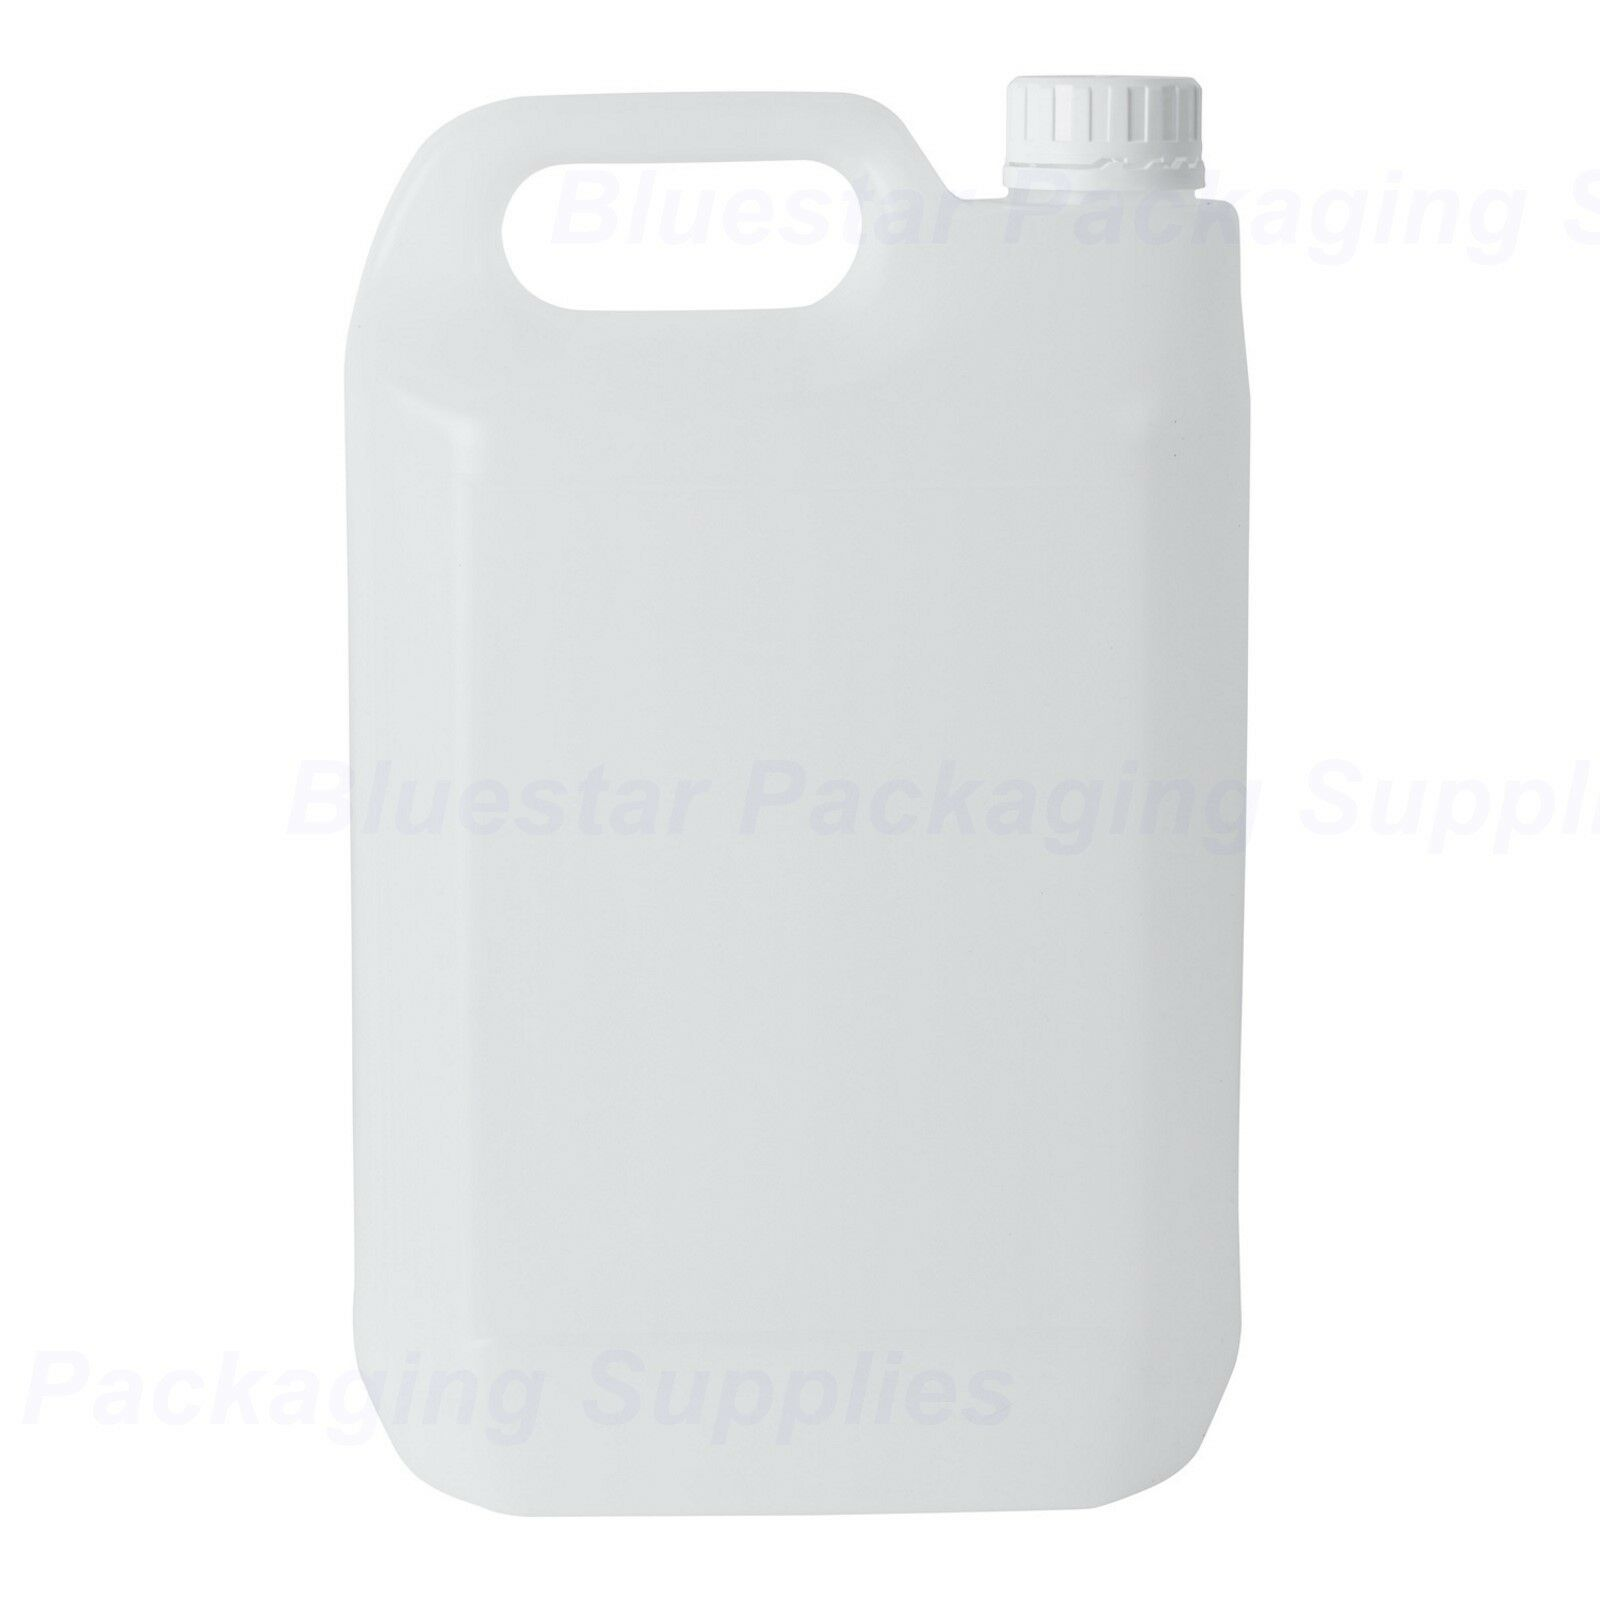 5 Litre 5L Plastic Jerry Can Bottle Water Carrier Container With Tamper Caps